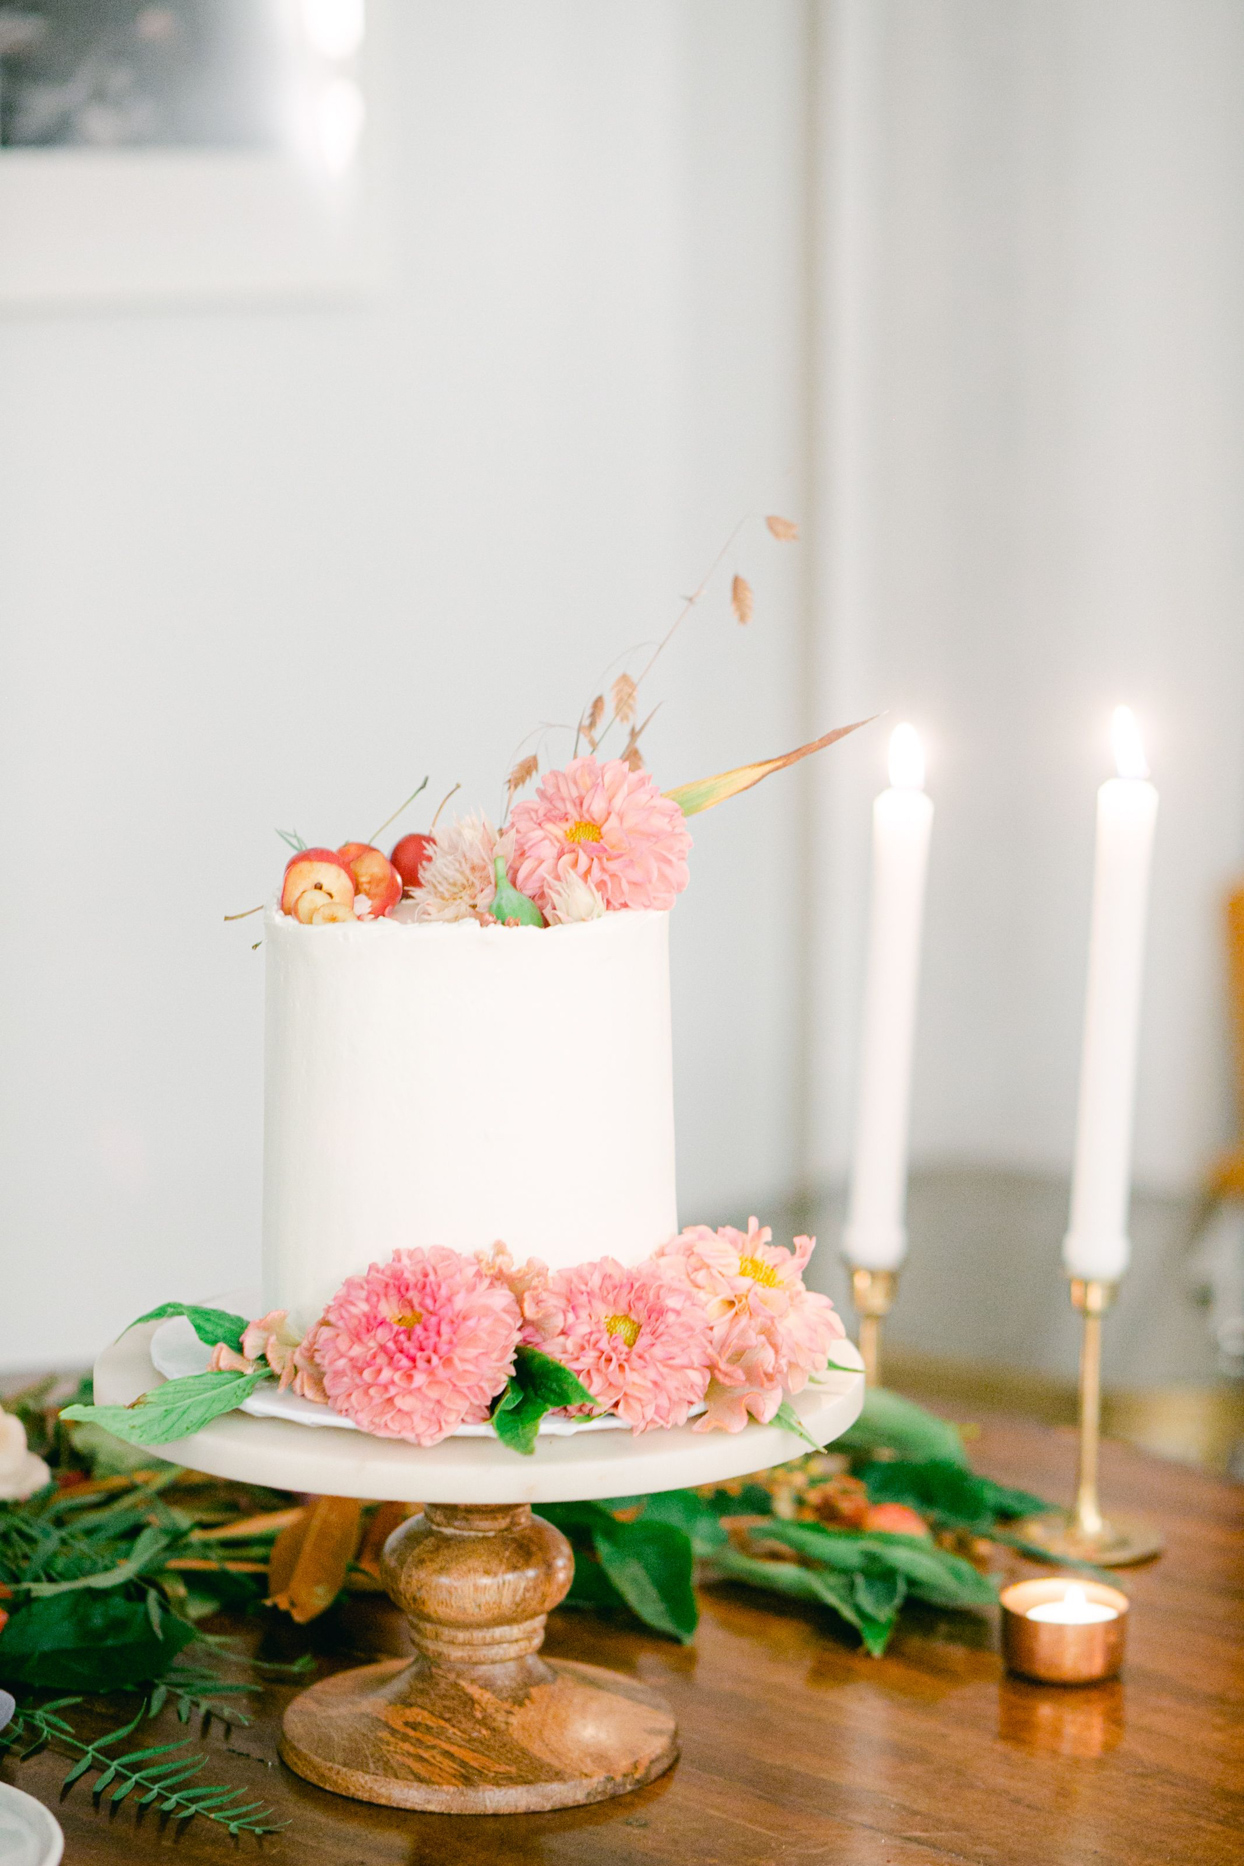 simple single tier wedding cake with pink flowers and candles on table